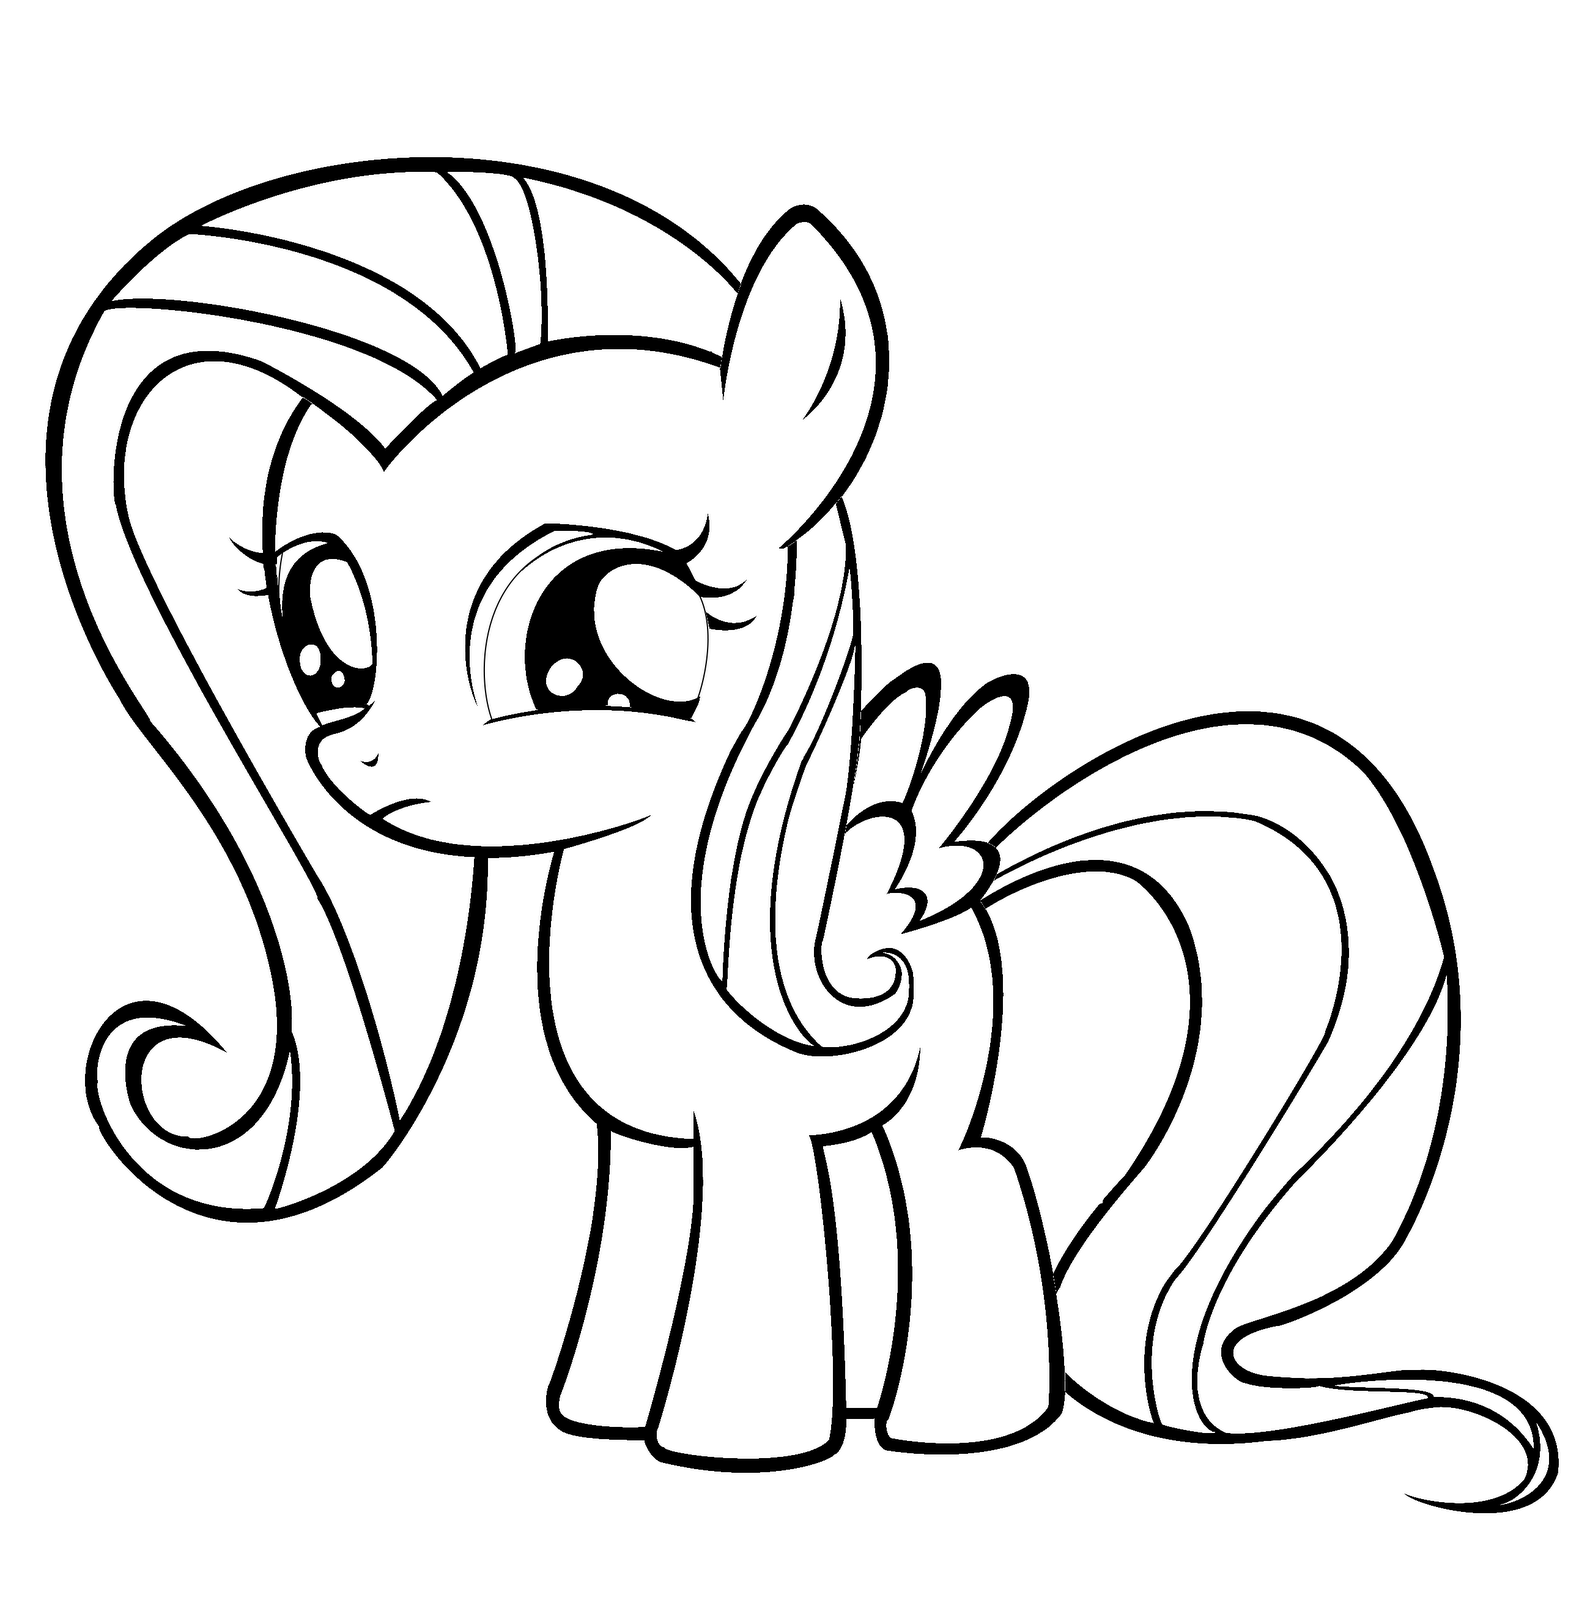 Fluttershy Coloring Pages Best Coloring Pages For Kids Coloring Pages For Children